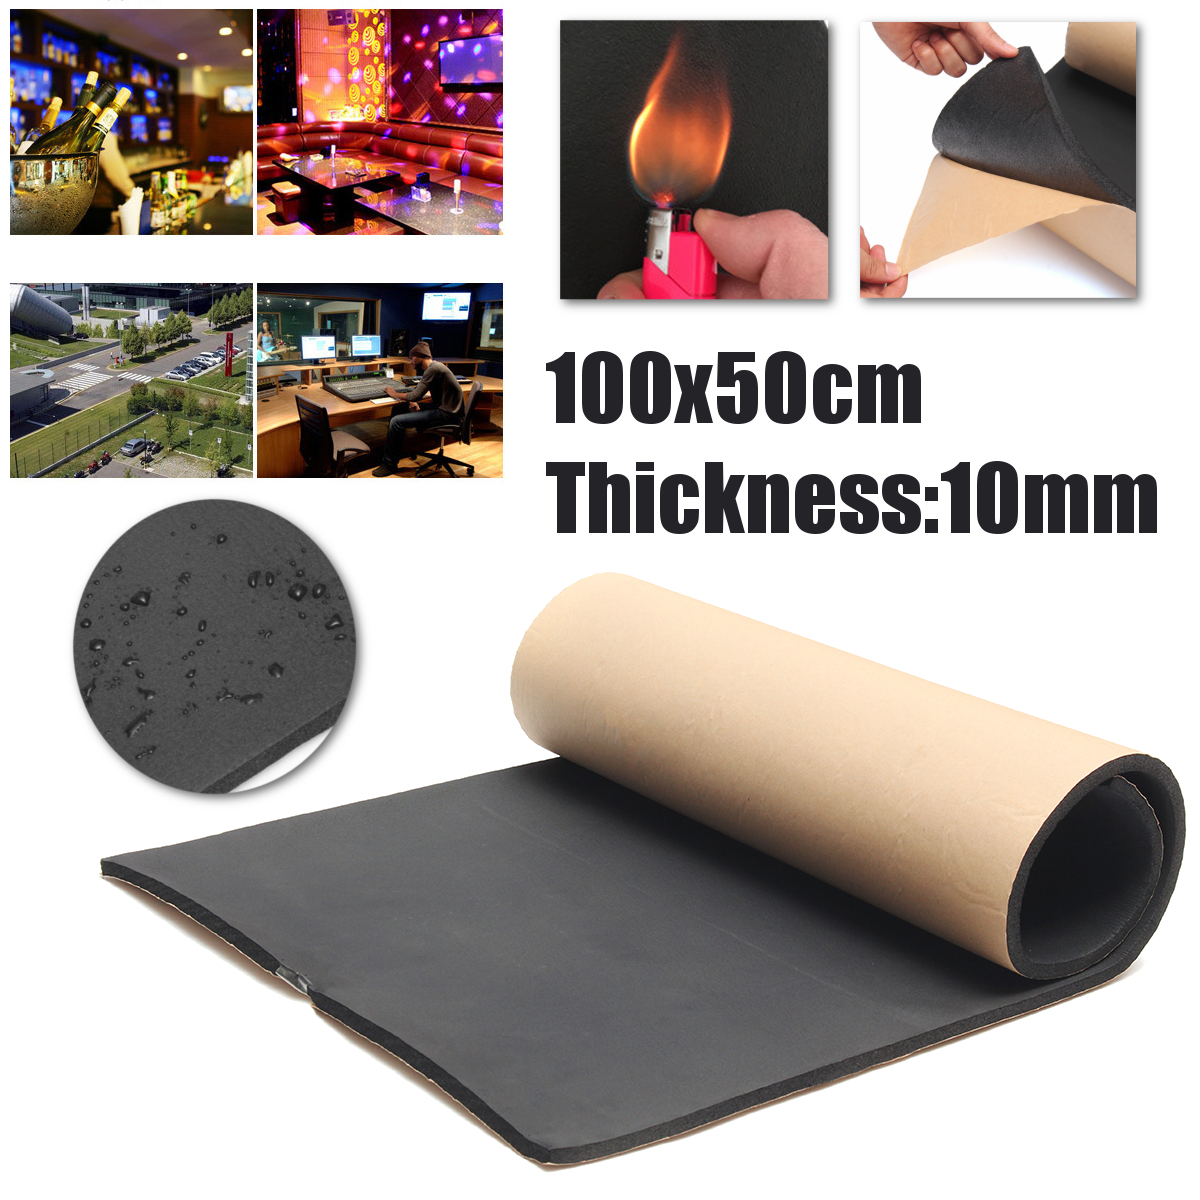 1m x 50cm High Density Soundproof Insulation Thermal 10mm Self Adhesive Waterproof Closed Cell Foam Sheets DIY Craft Supplies1m x 50cm High Density Soundproof Insulation Thermal 10mm Self Adhesive Waterproof Closed Cell Foam Sheets DIY Craft Supplies